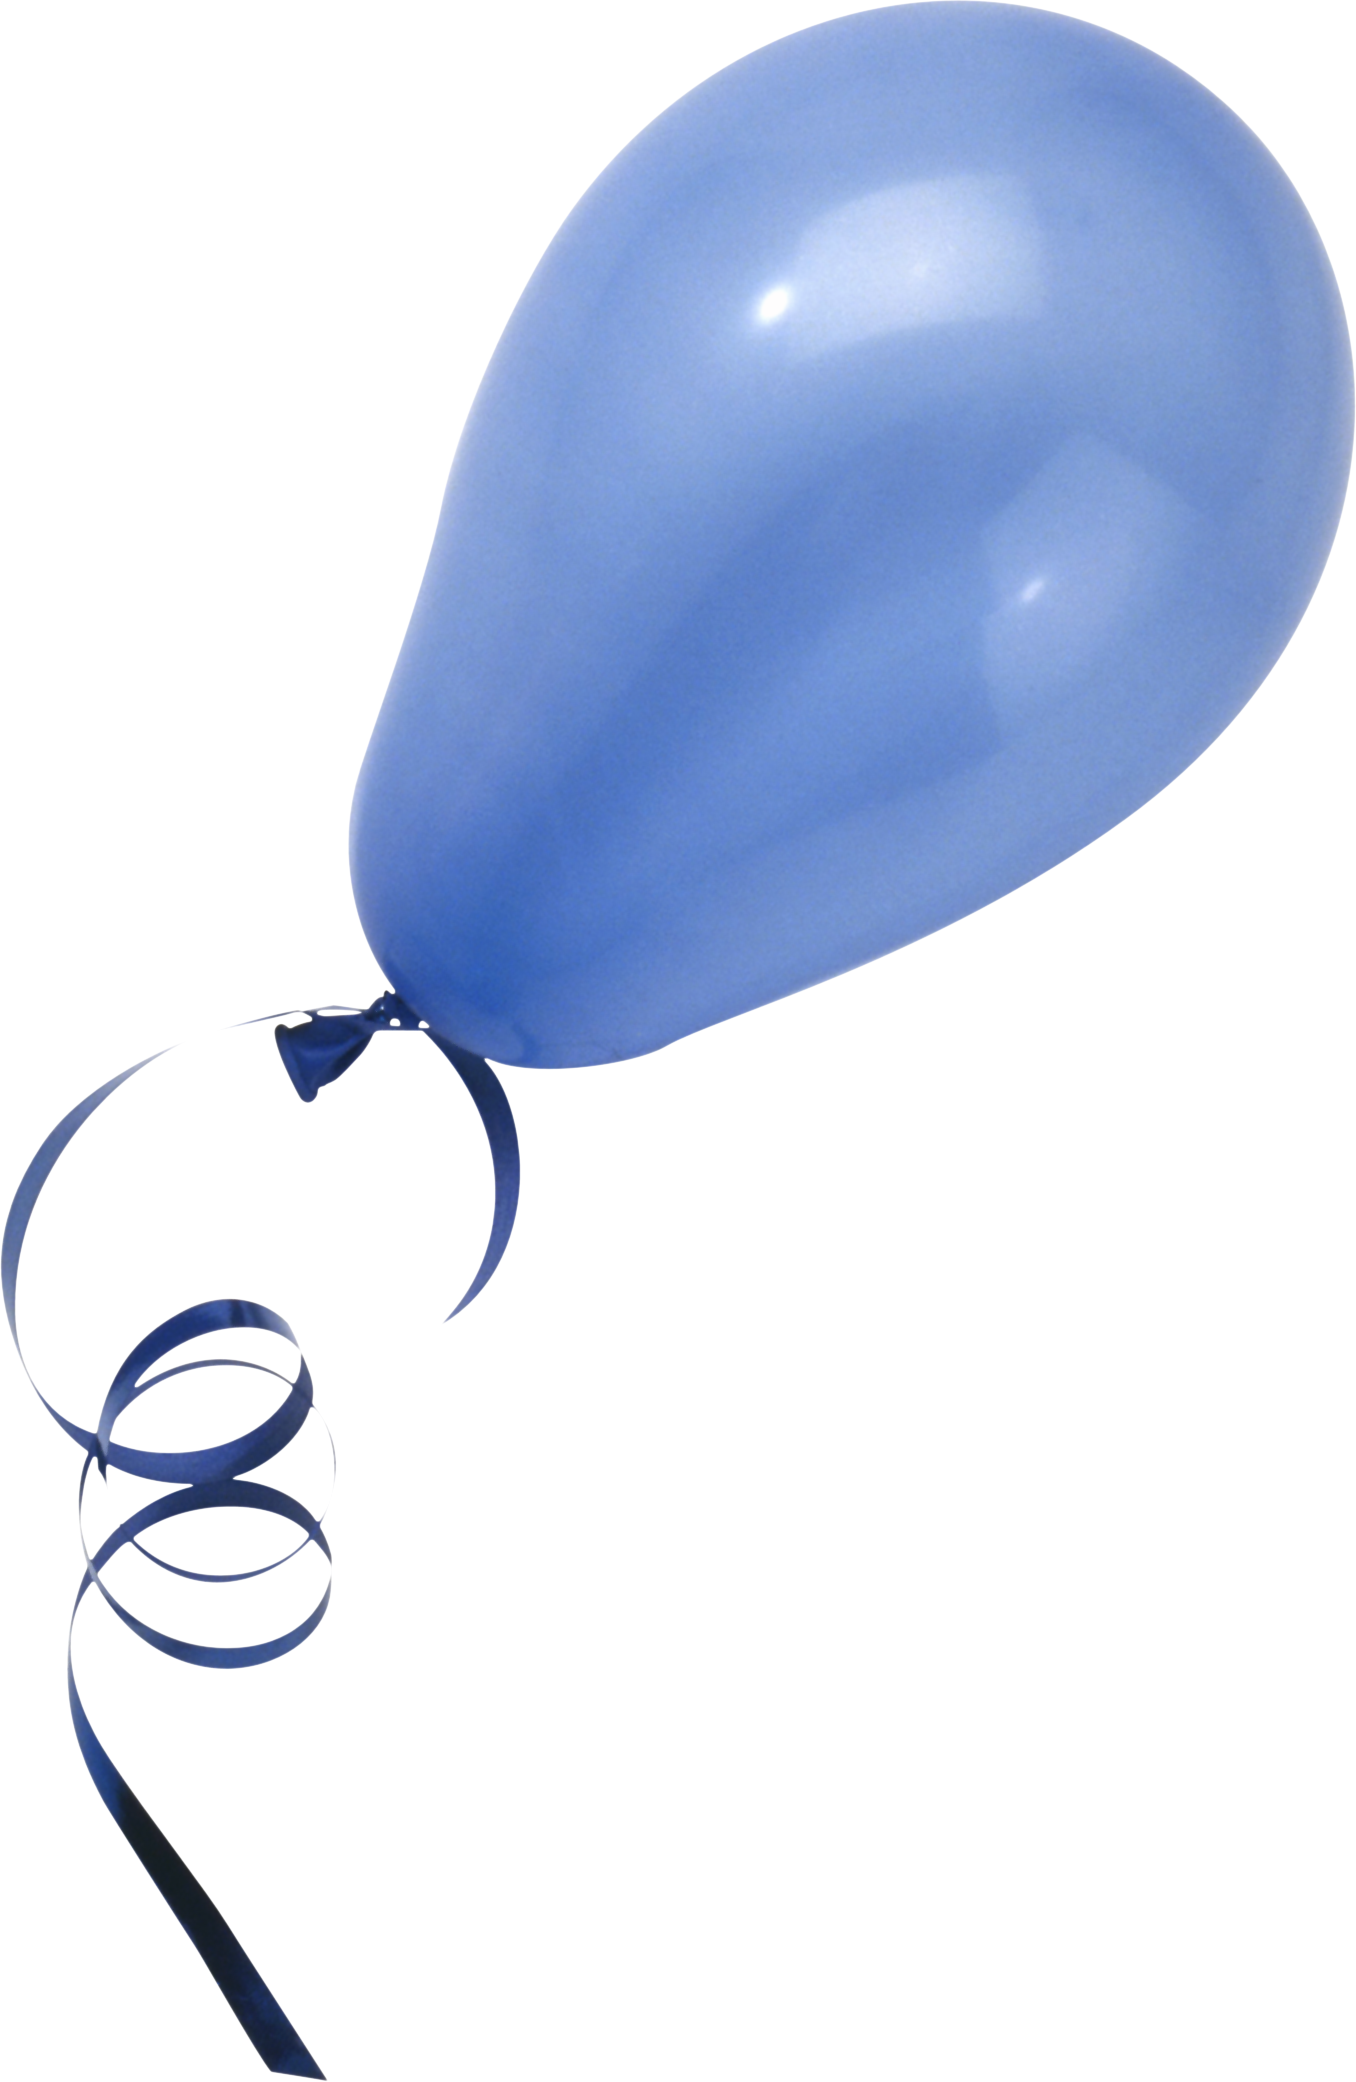 Blue Balloon Png Image Blue Balloons Balloons Png Images